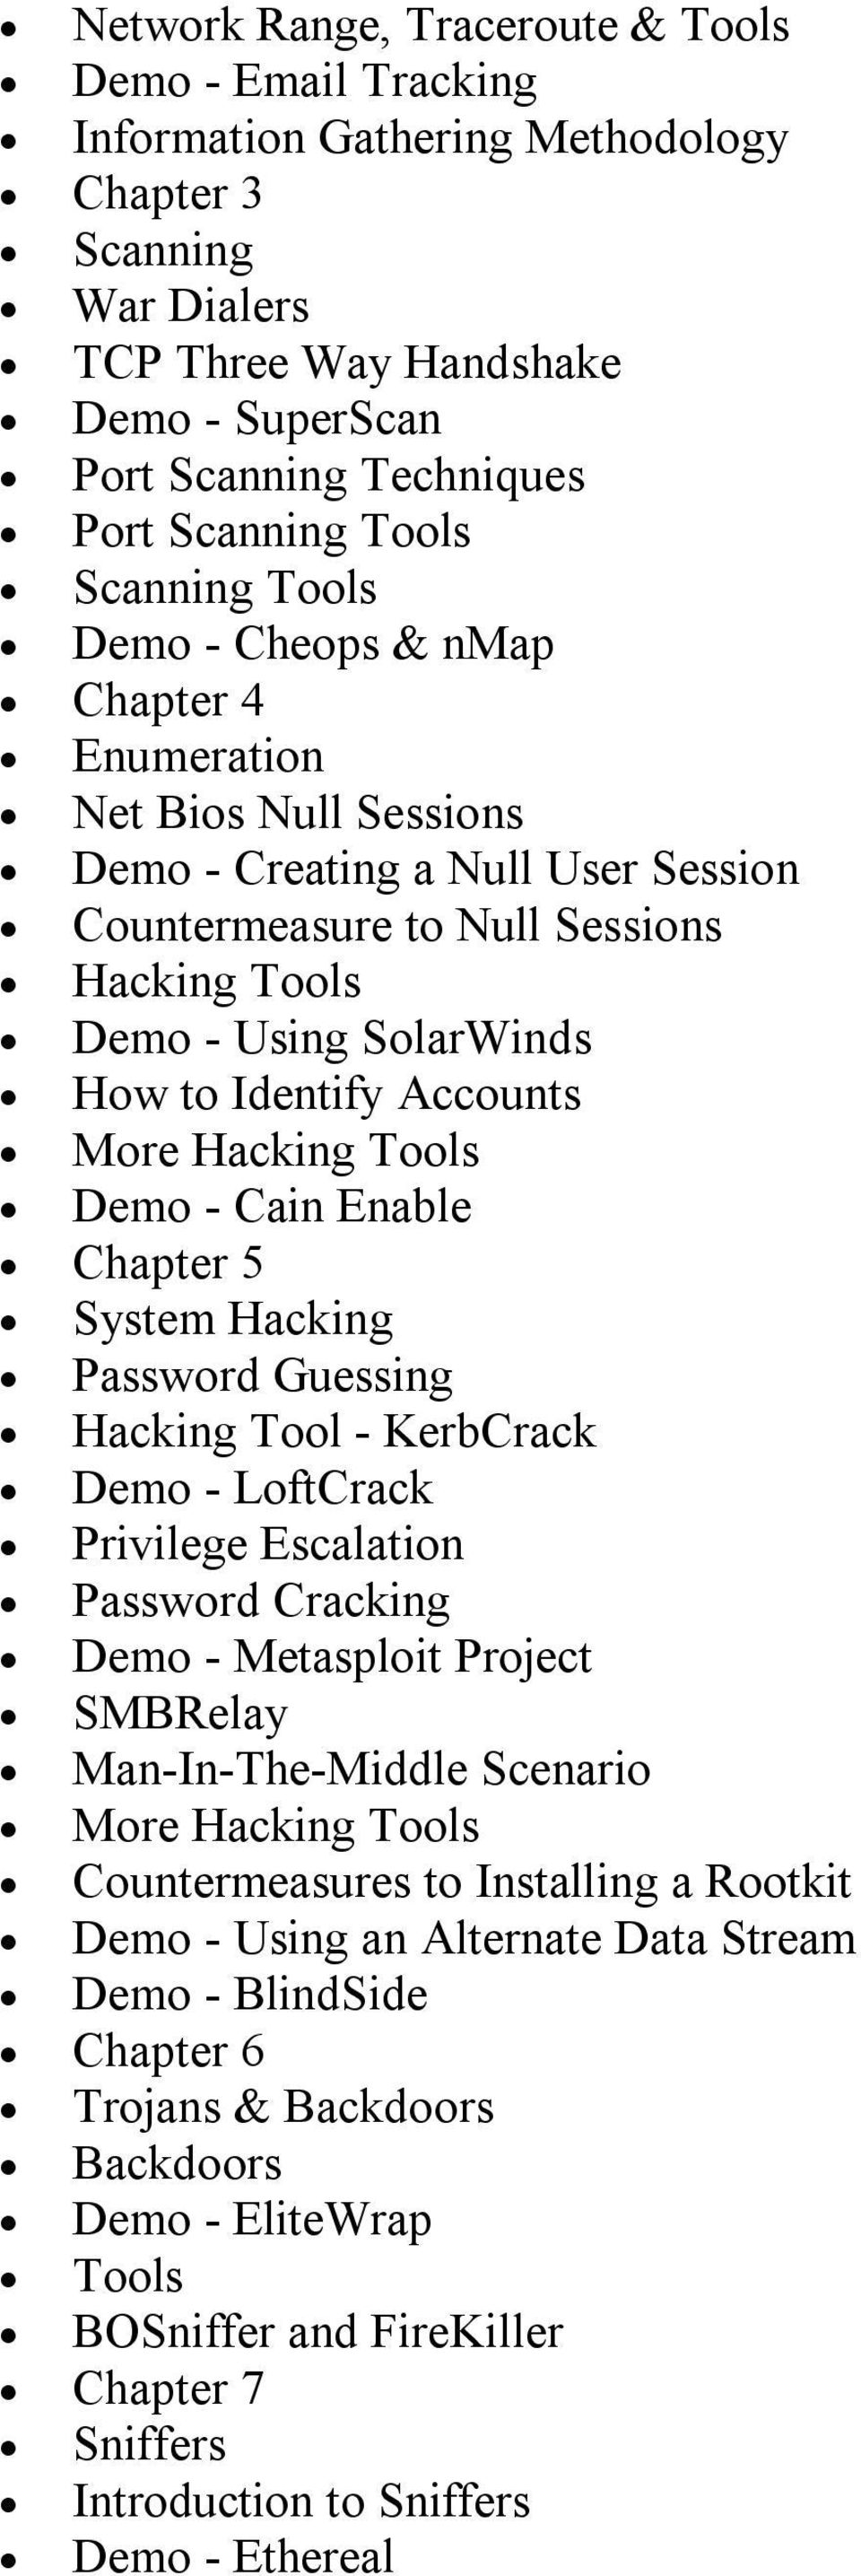 Identify Accounts More Hacking Tools Demo Cain Enable Chapter 5 System Hacking Password Guessing Hacking Tool KerbCrack Demo LoftCrack Privilege Escalation Password Cracking Demo Metasploit Project